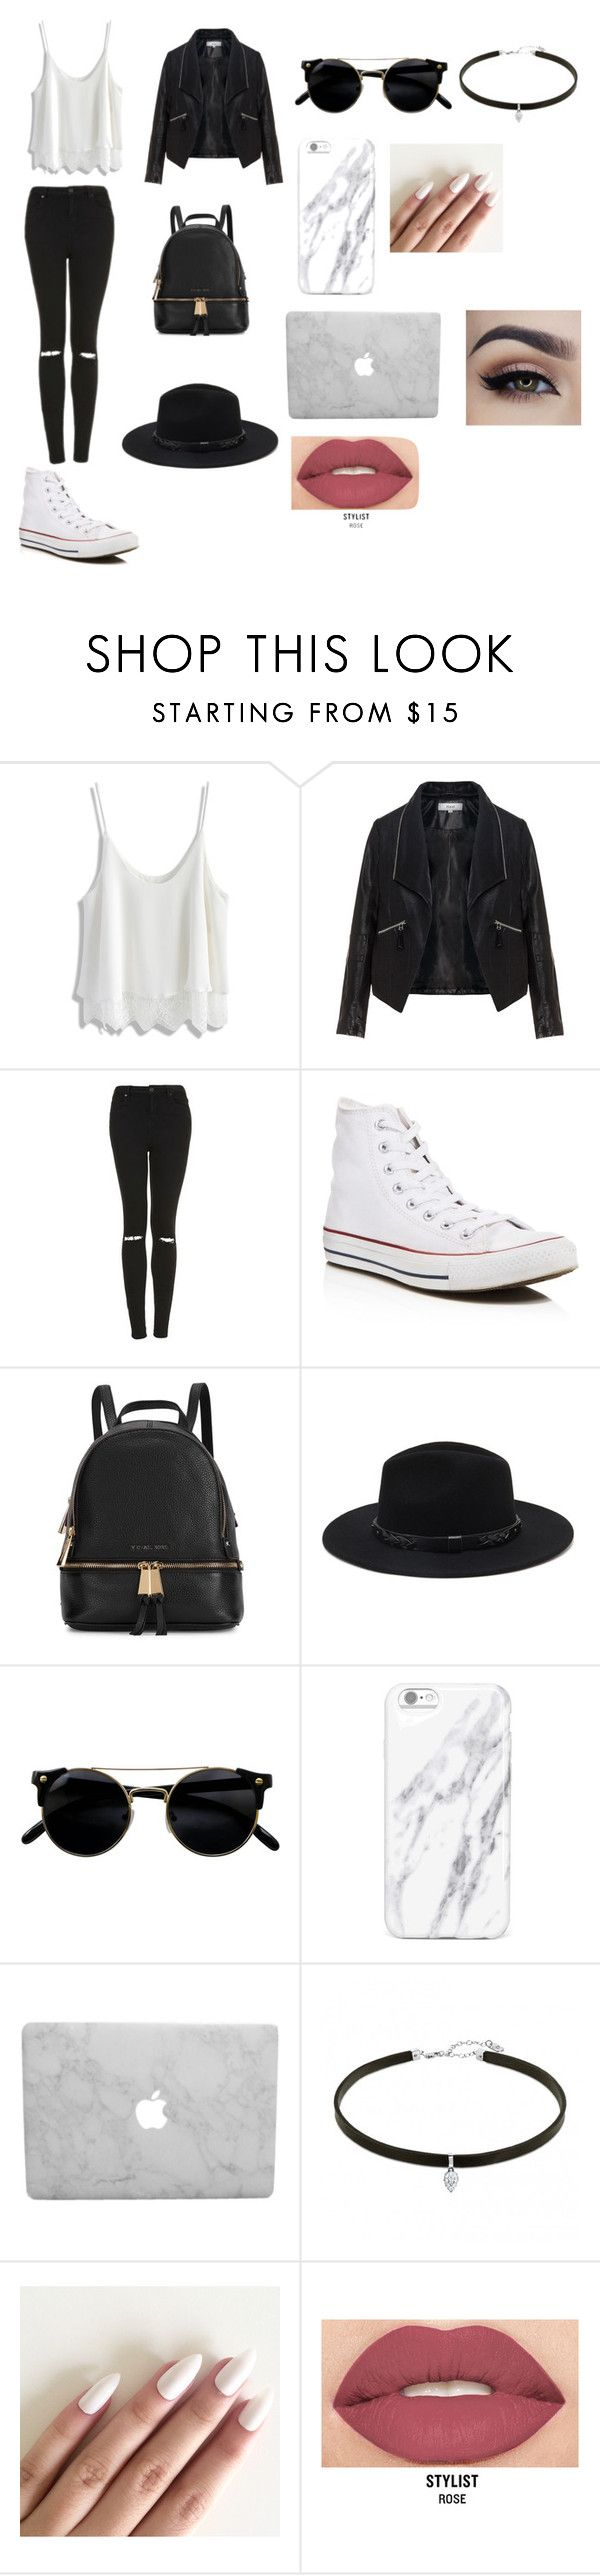 """Untitled #13"" by natashaasante on Polyvore featuring Chicwish, Zizzi, Topshop, Converse, Michael Kors, Forever 21 and Smashbox"